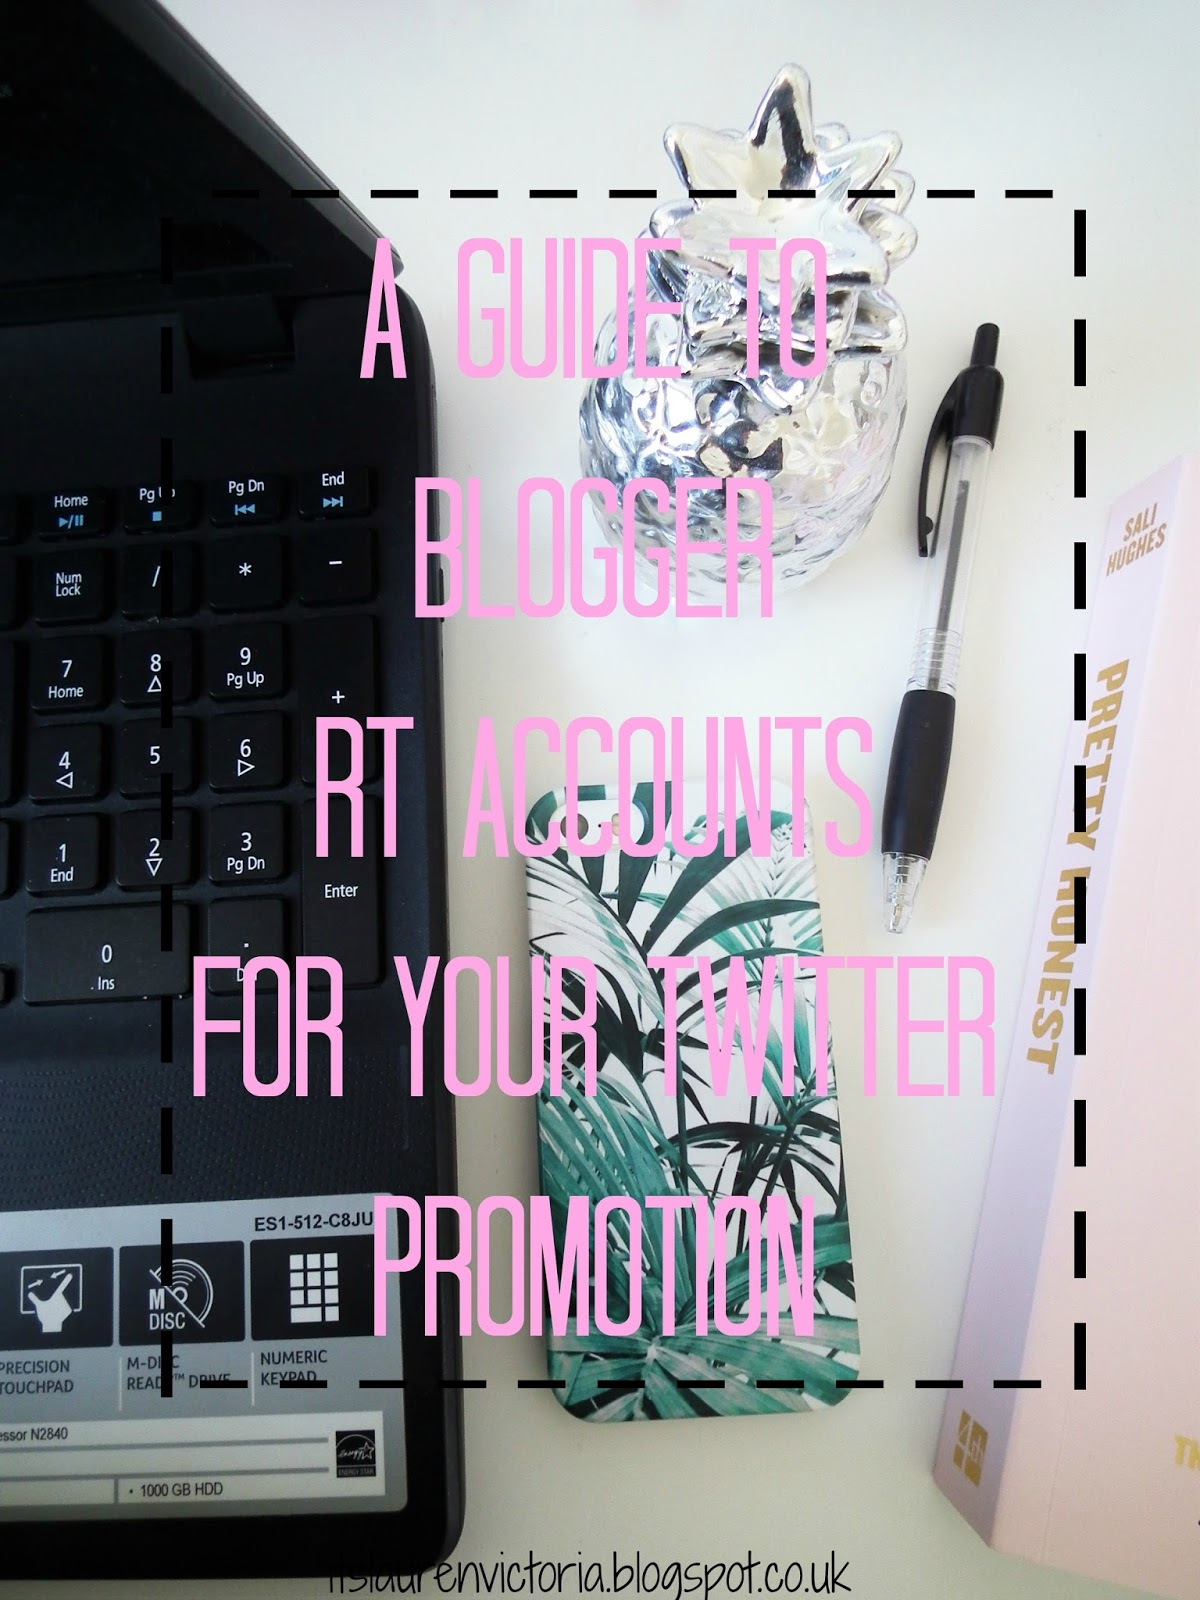 The Ultimate Guide To Blogger RT Accounts For Your Twitter Promotion